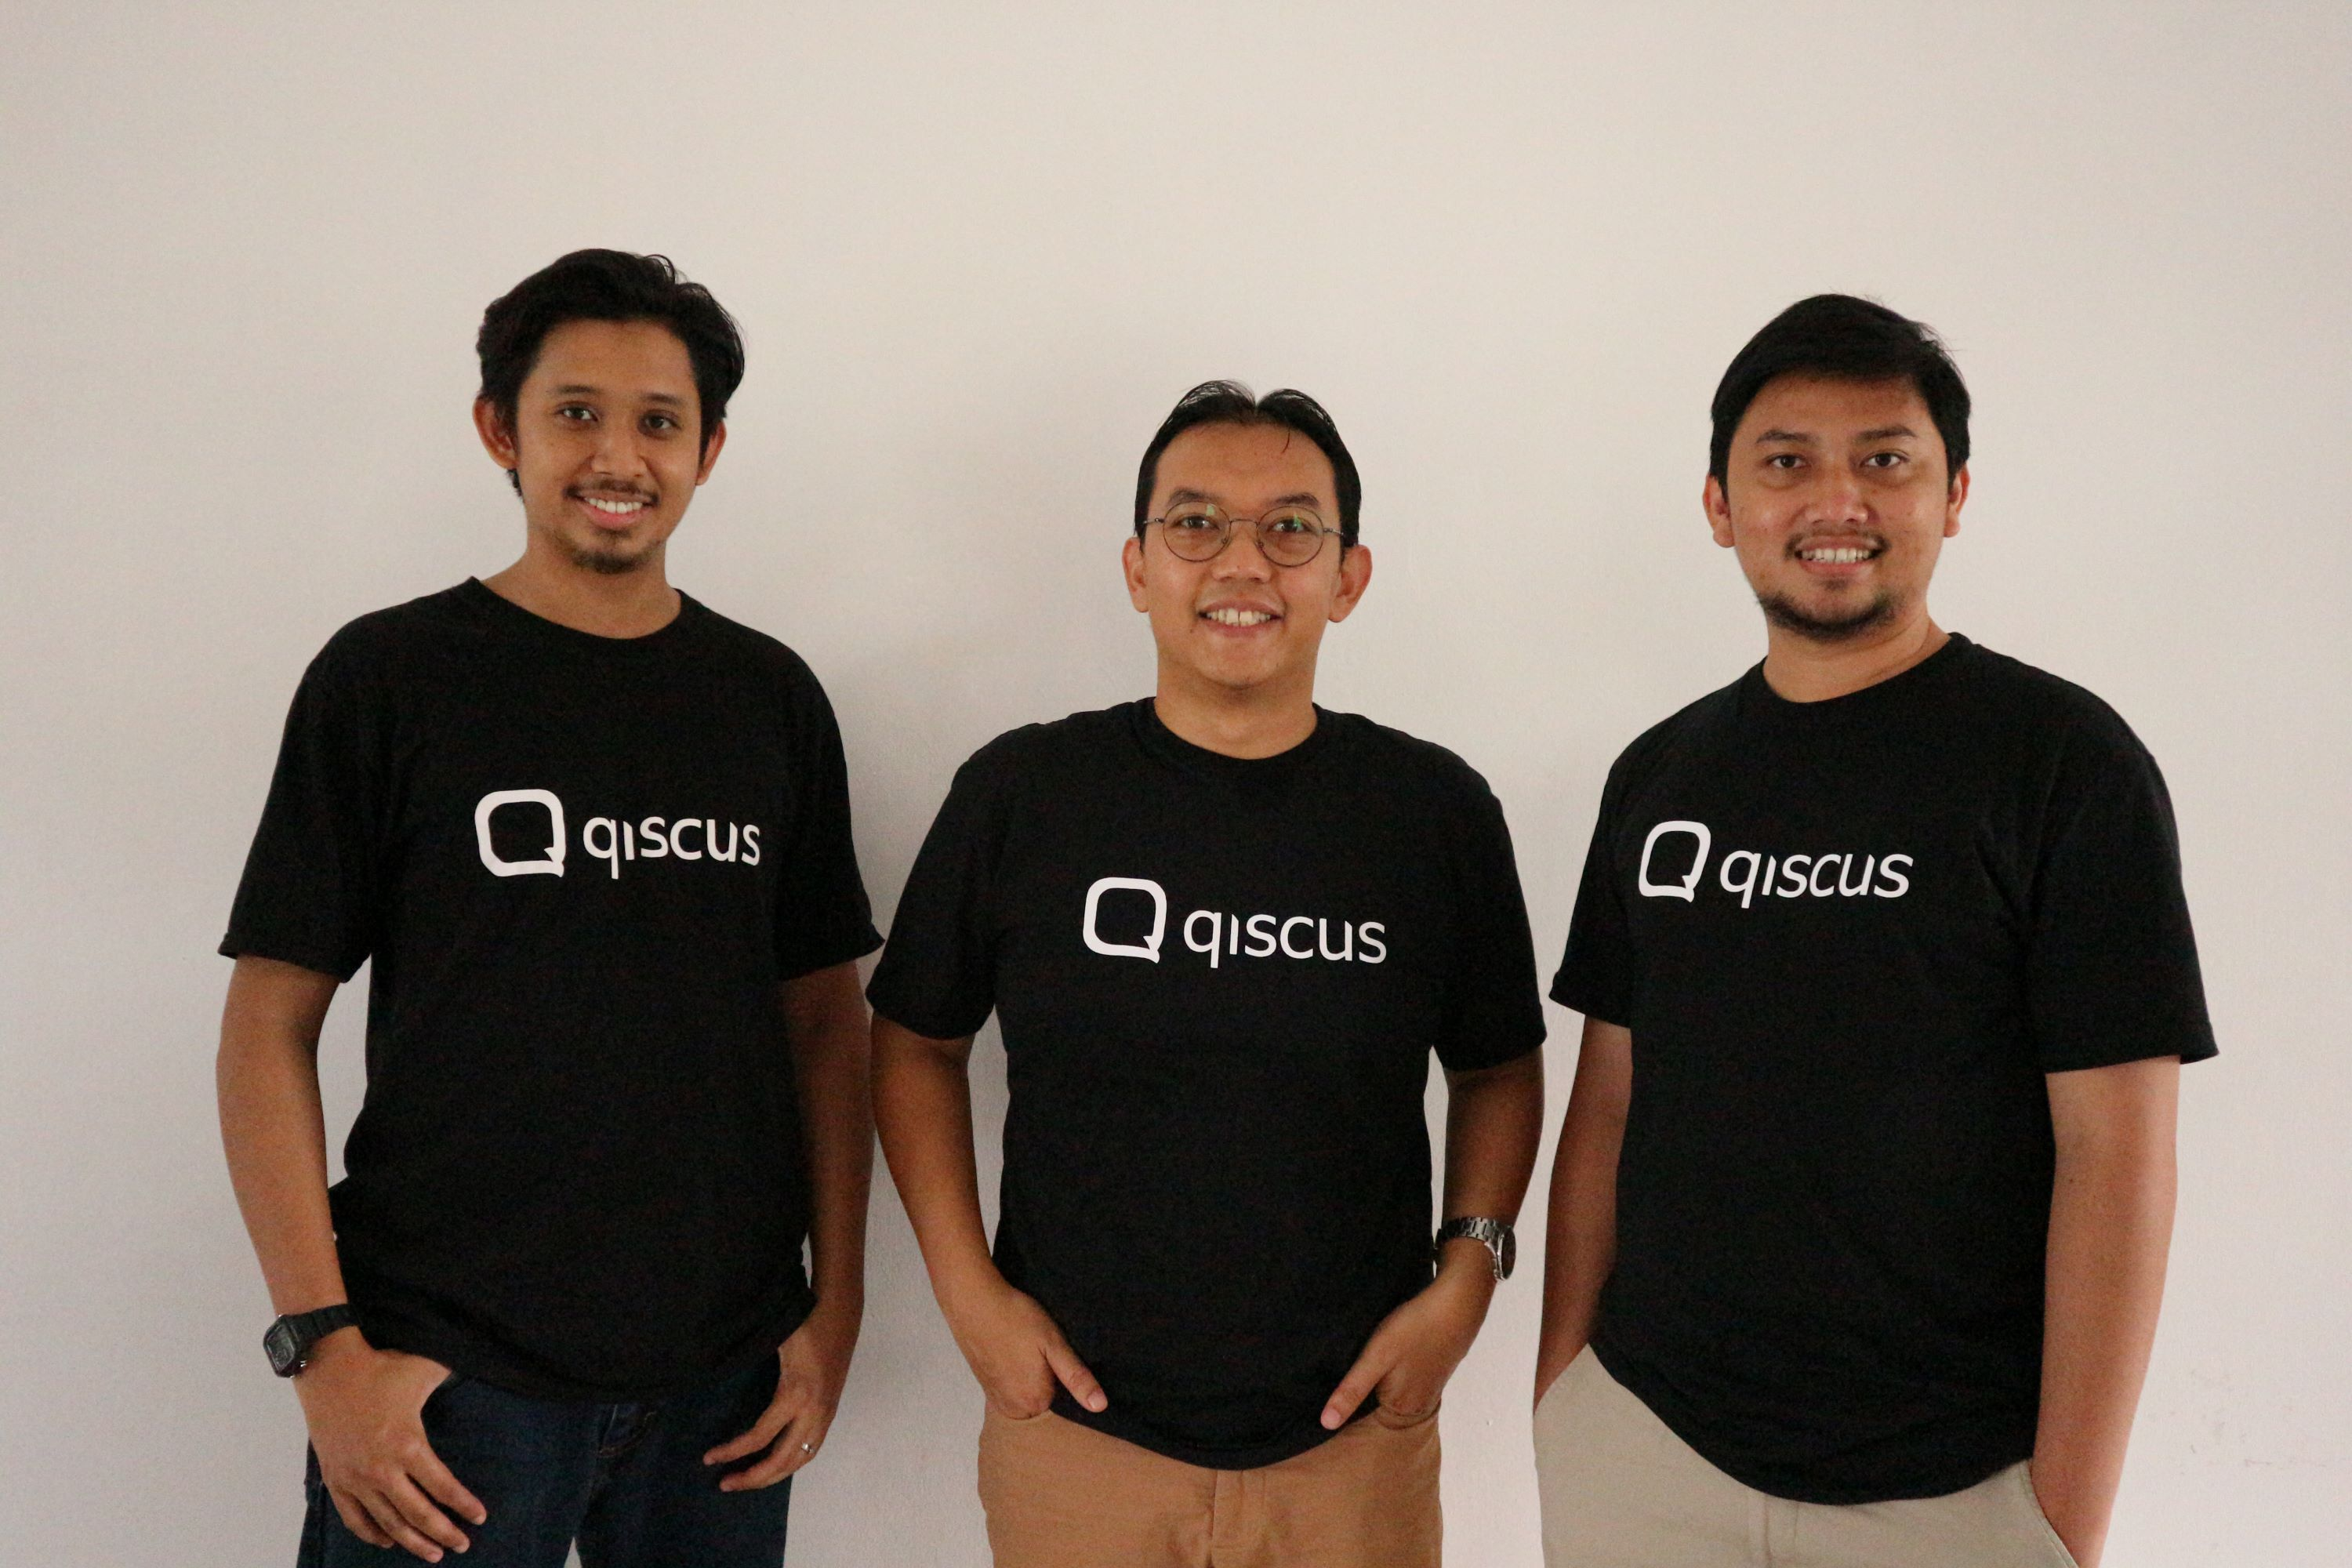 Qiscus Offers a Chat Platform for Other Apps